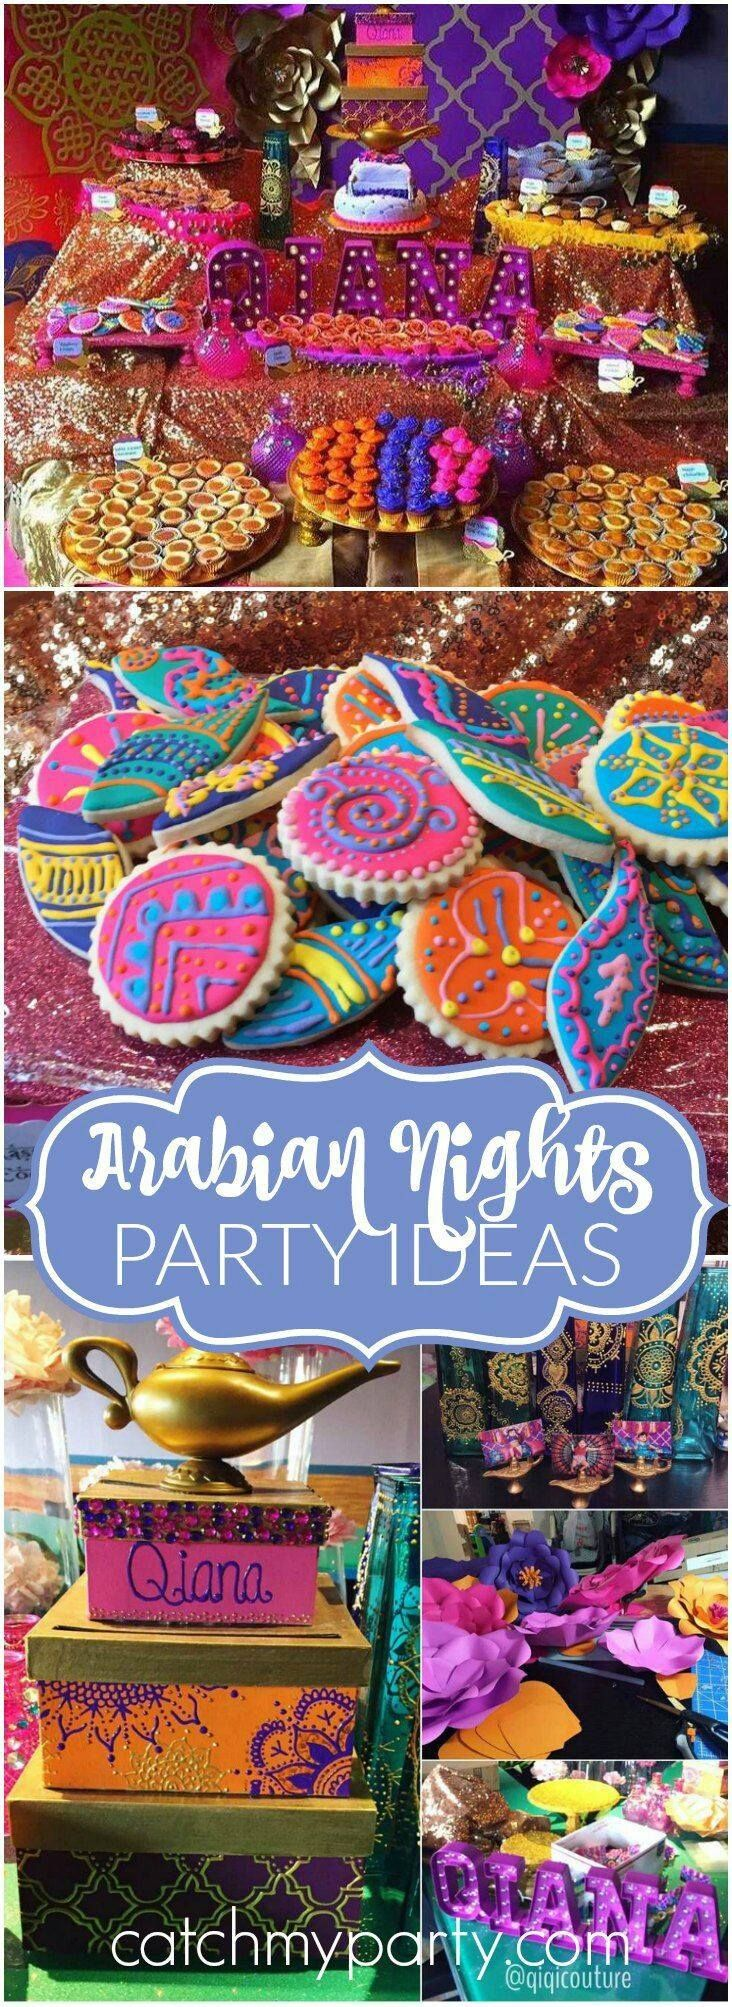 Pin by Yvette Conde on Wedding Arabian nights party